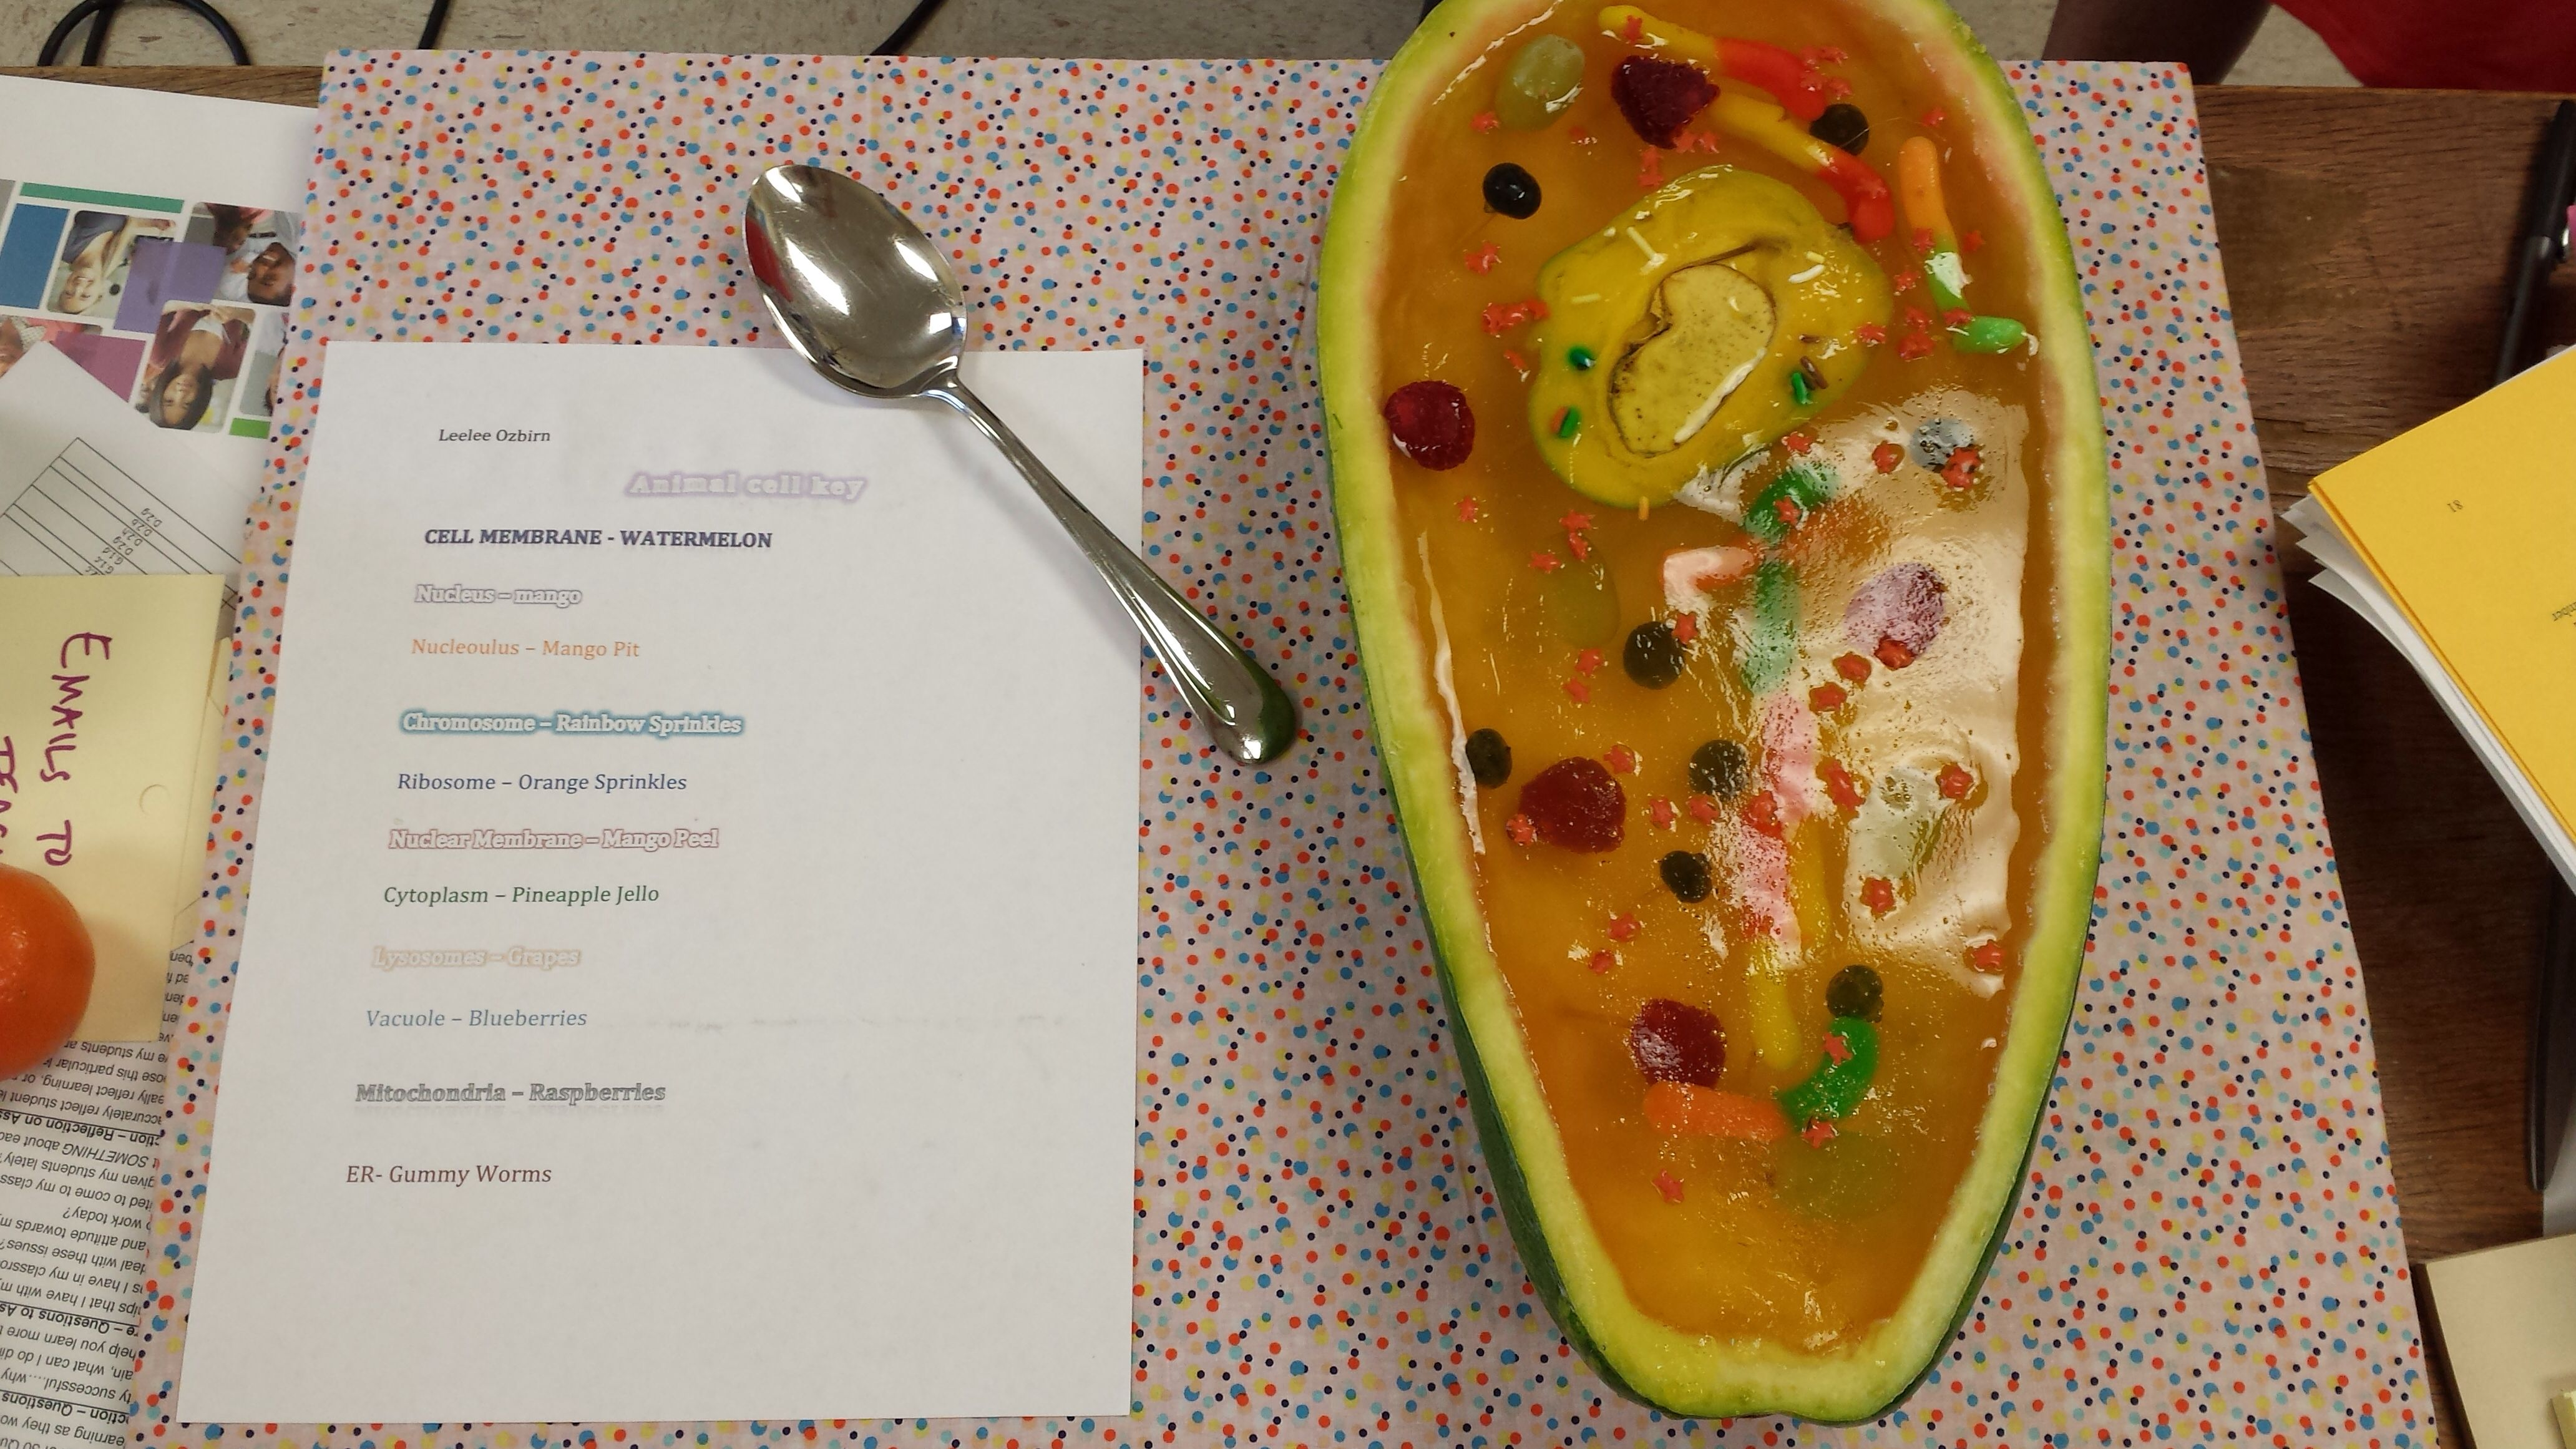 Animal Cell Model Watermelon Rind Jello Fruit And